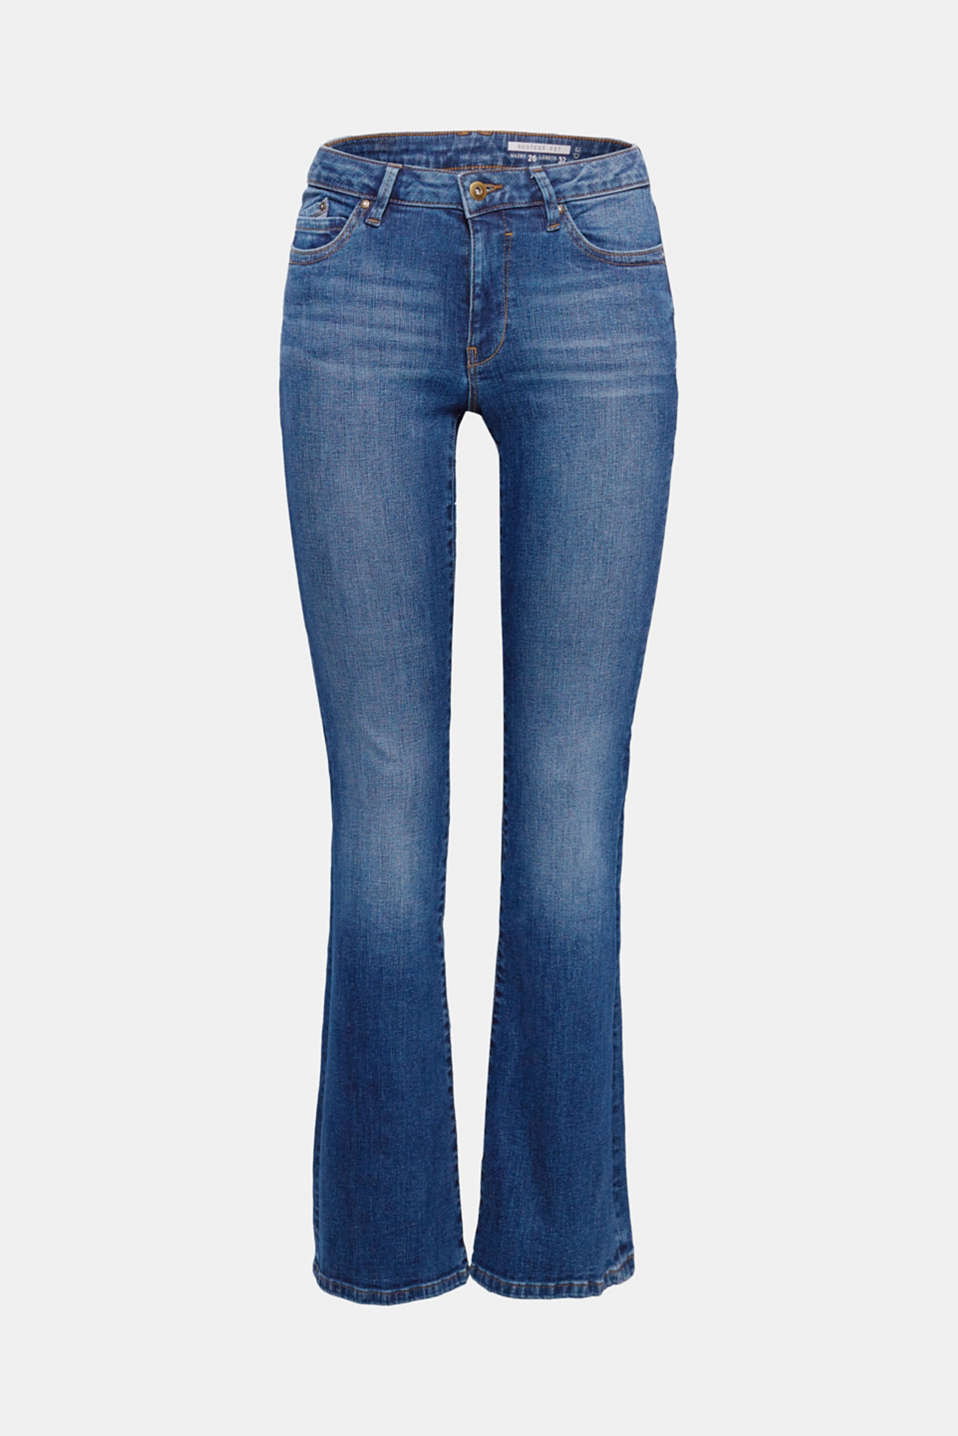 These jeans have a cool, trendy look thanks to the authentic garment-washed finish and flared leg length.